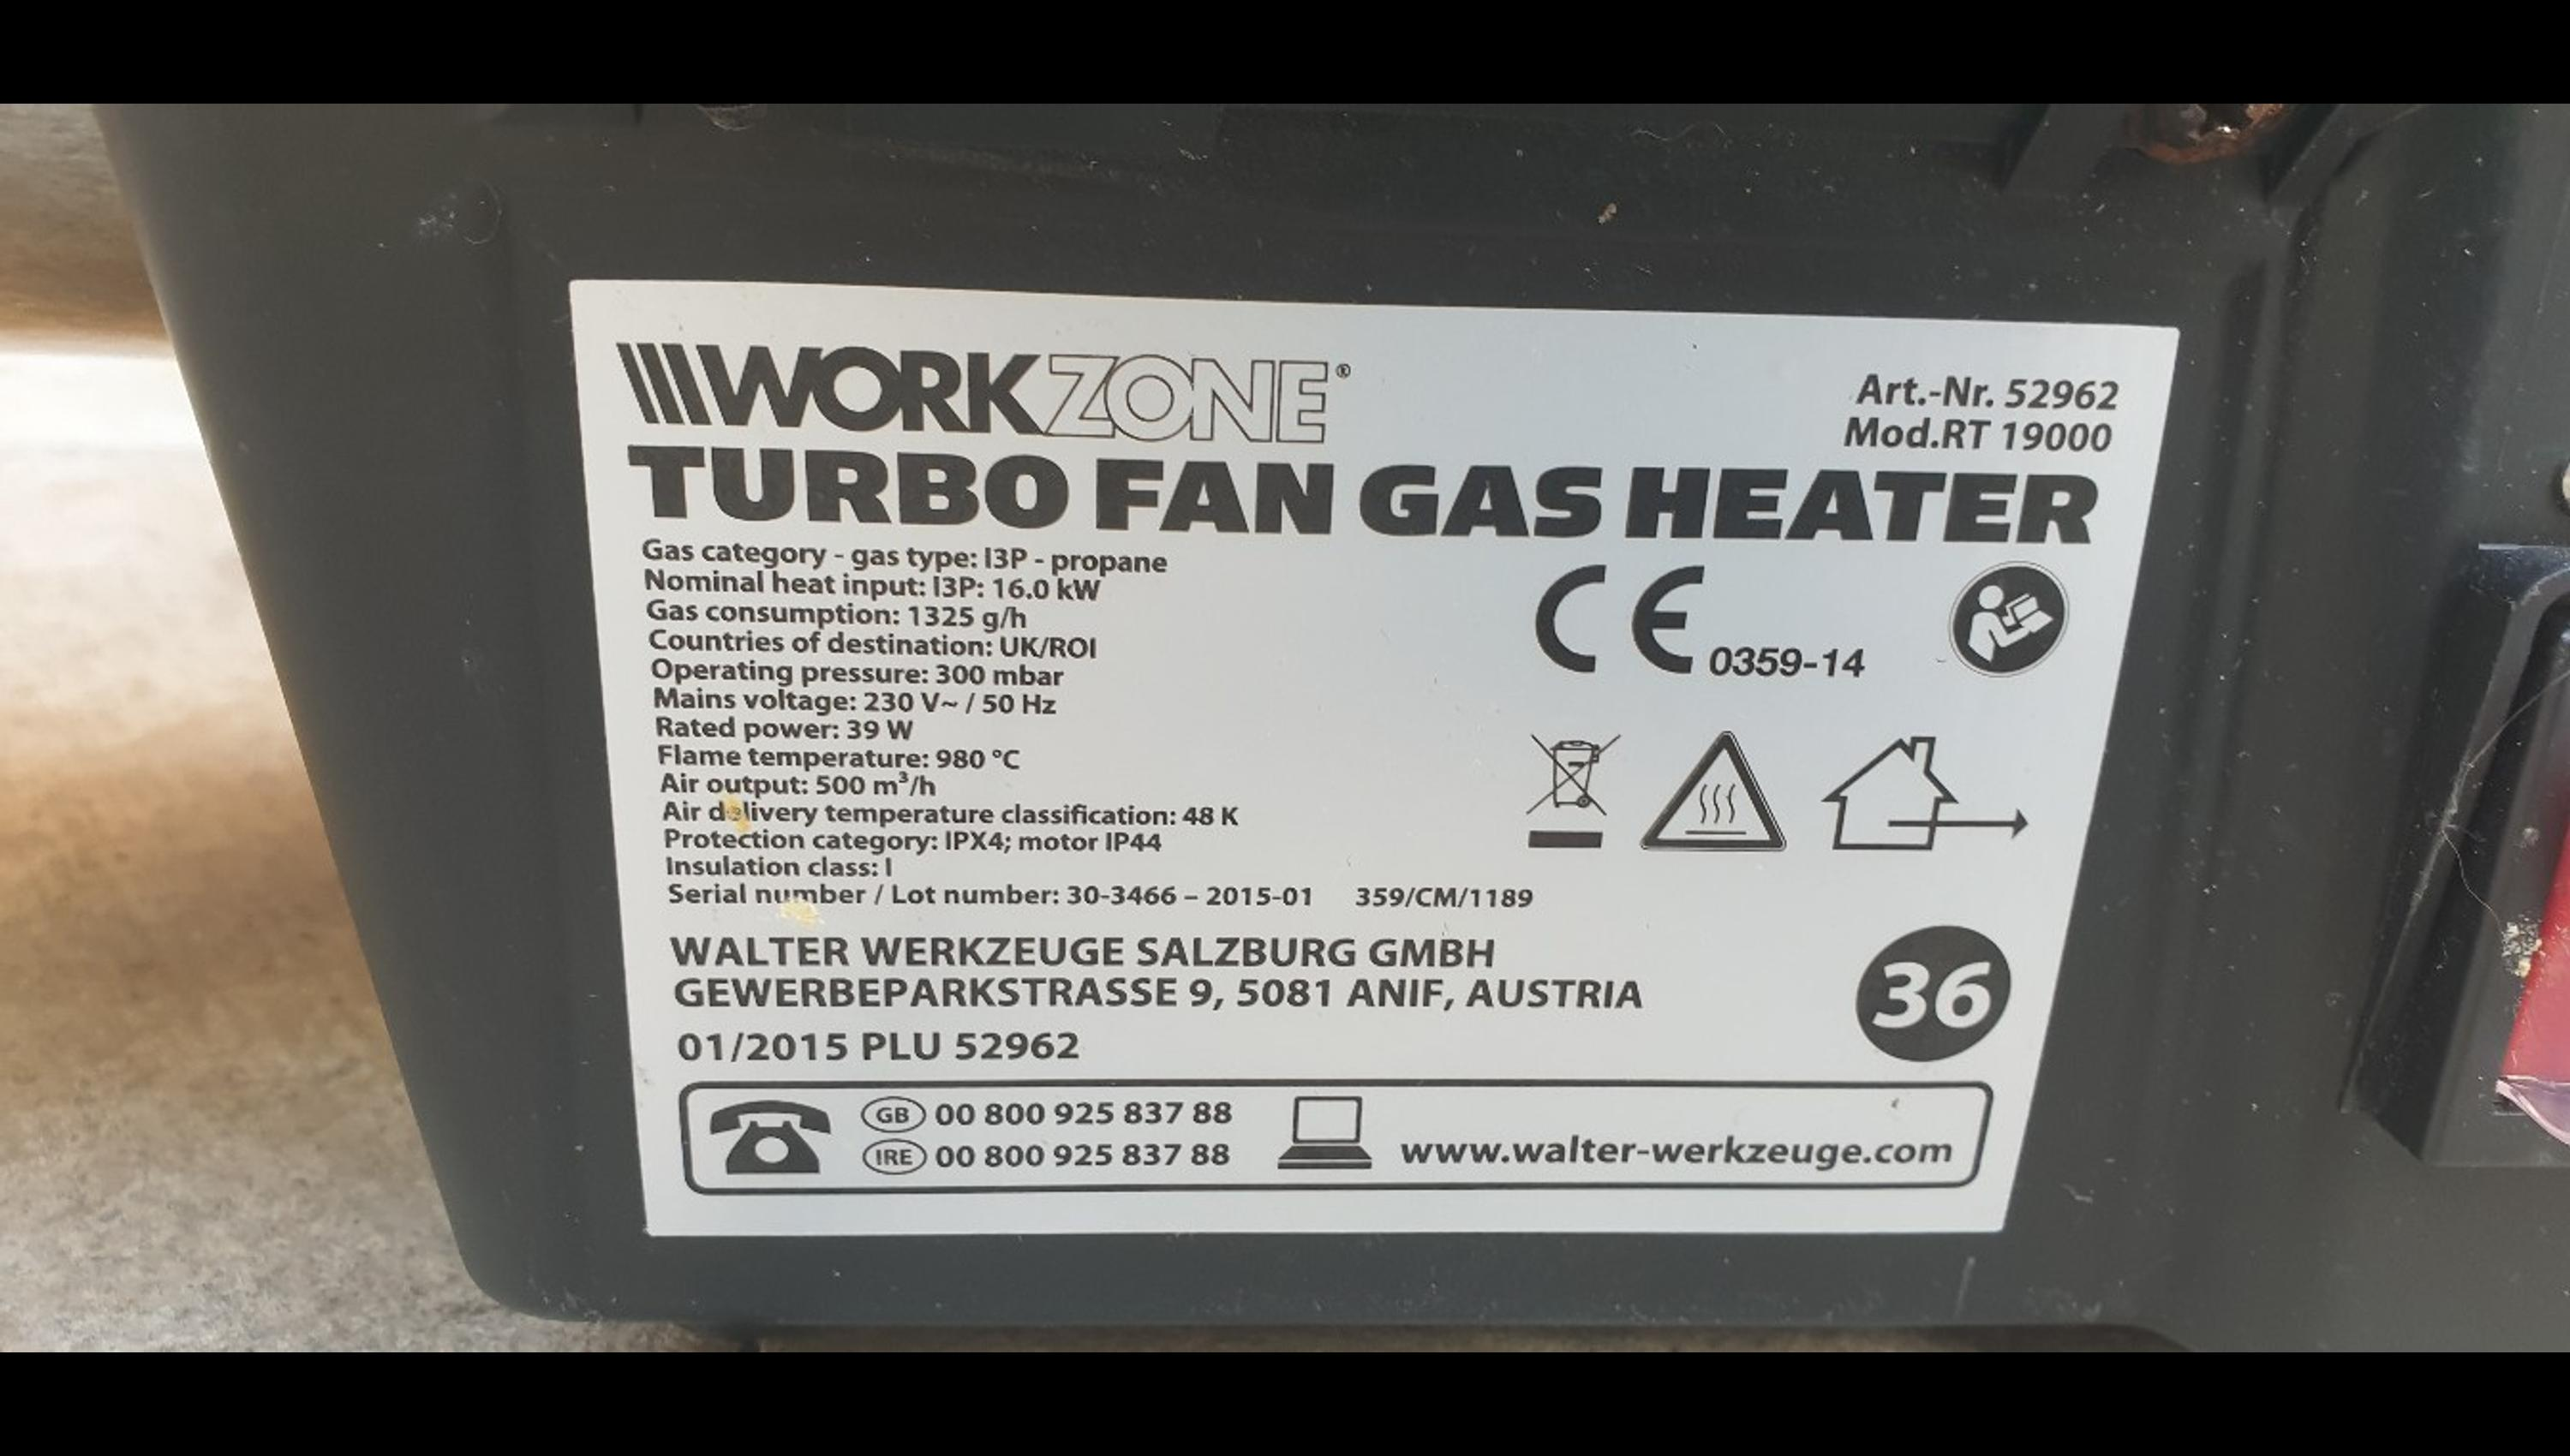 Workzone Turbo Fan Gas Heater for sale